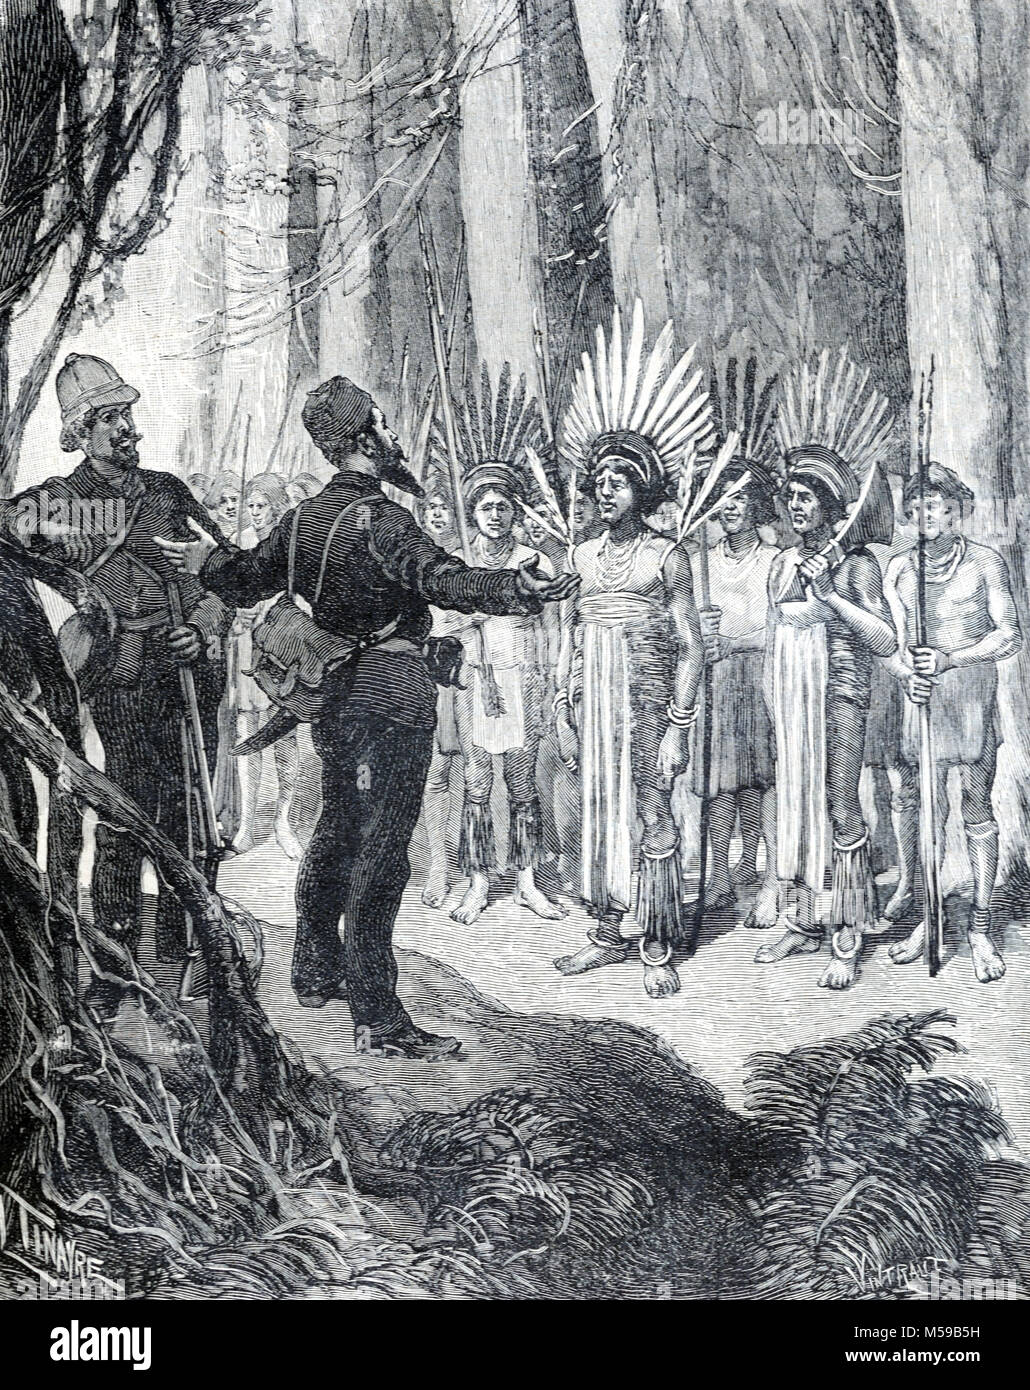 Henri Anatole Coudreau (1859-1899) French Geographer and explorer of French Guiana and the Amazon Basin Meets Chiefs - Stock Image